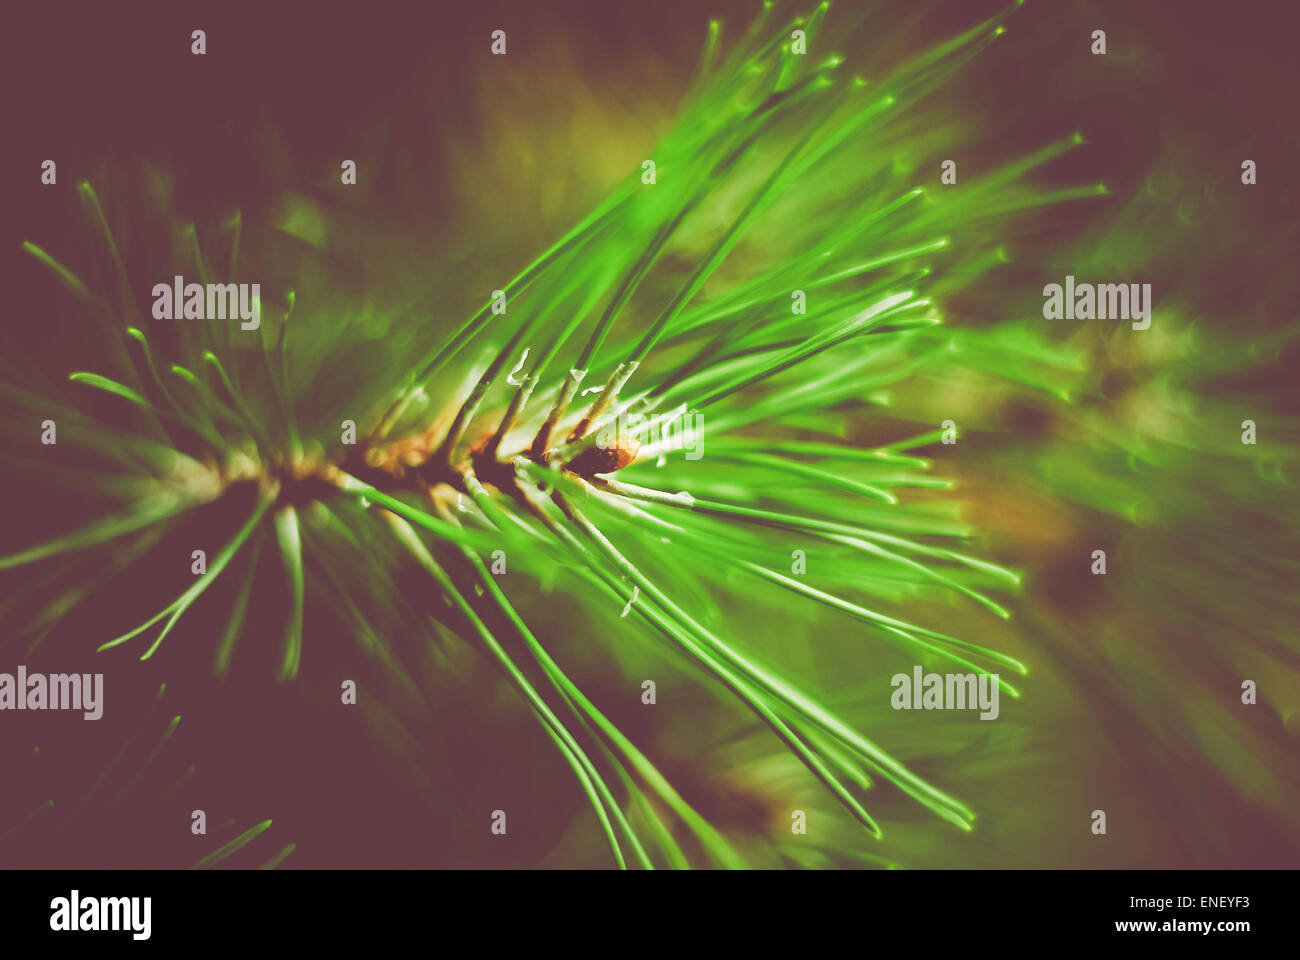 green conifer needle glow - dark soft and soft background - Stock Image